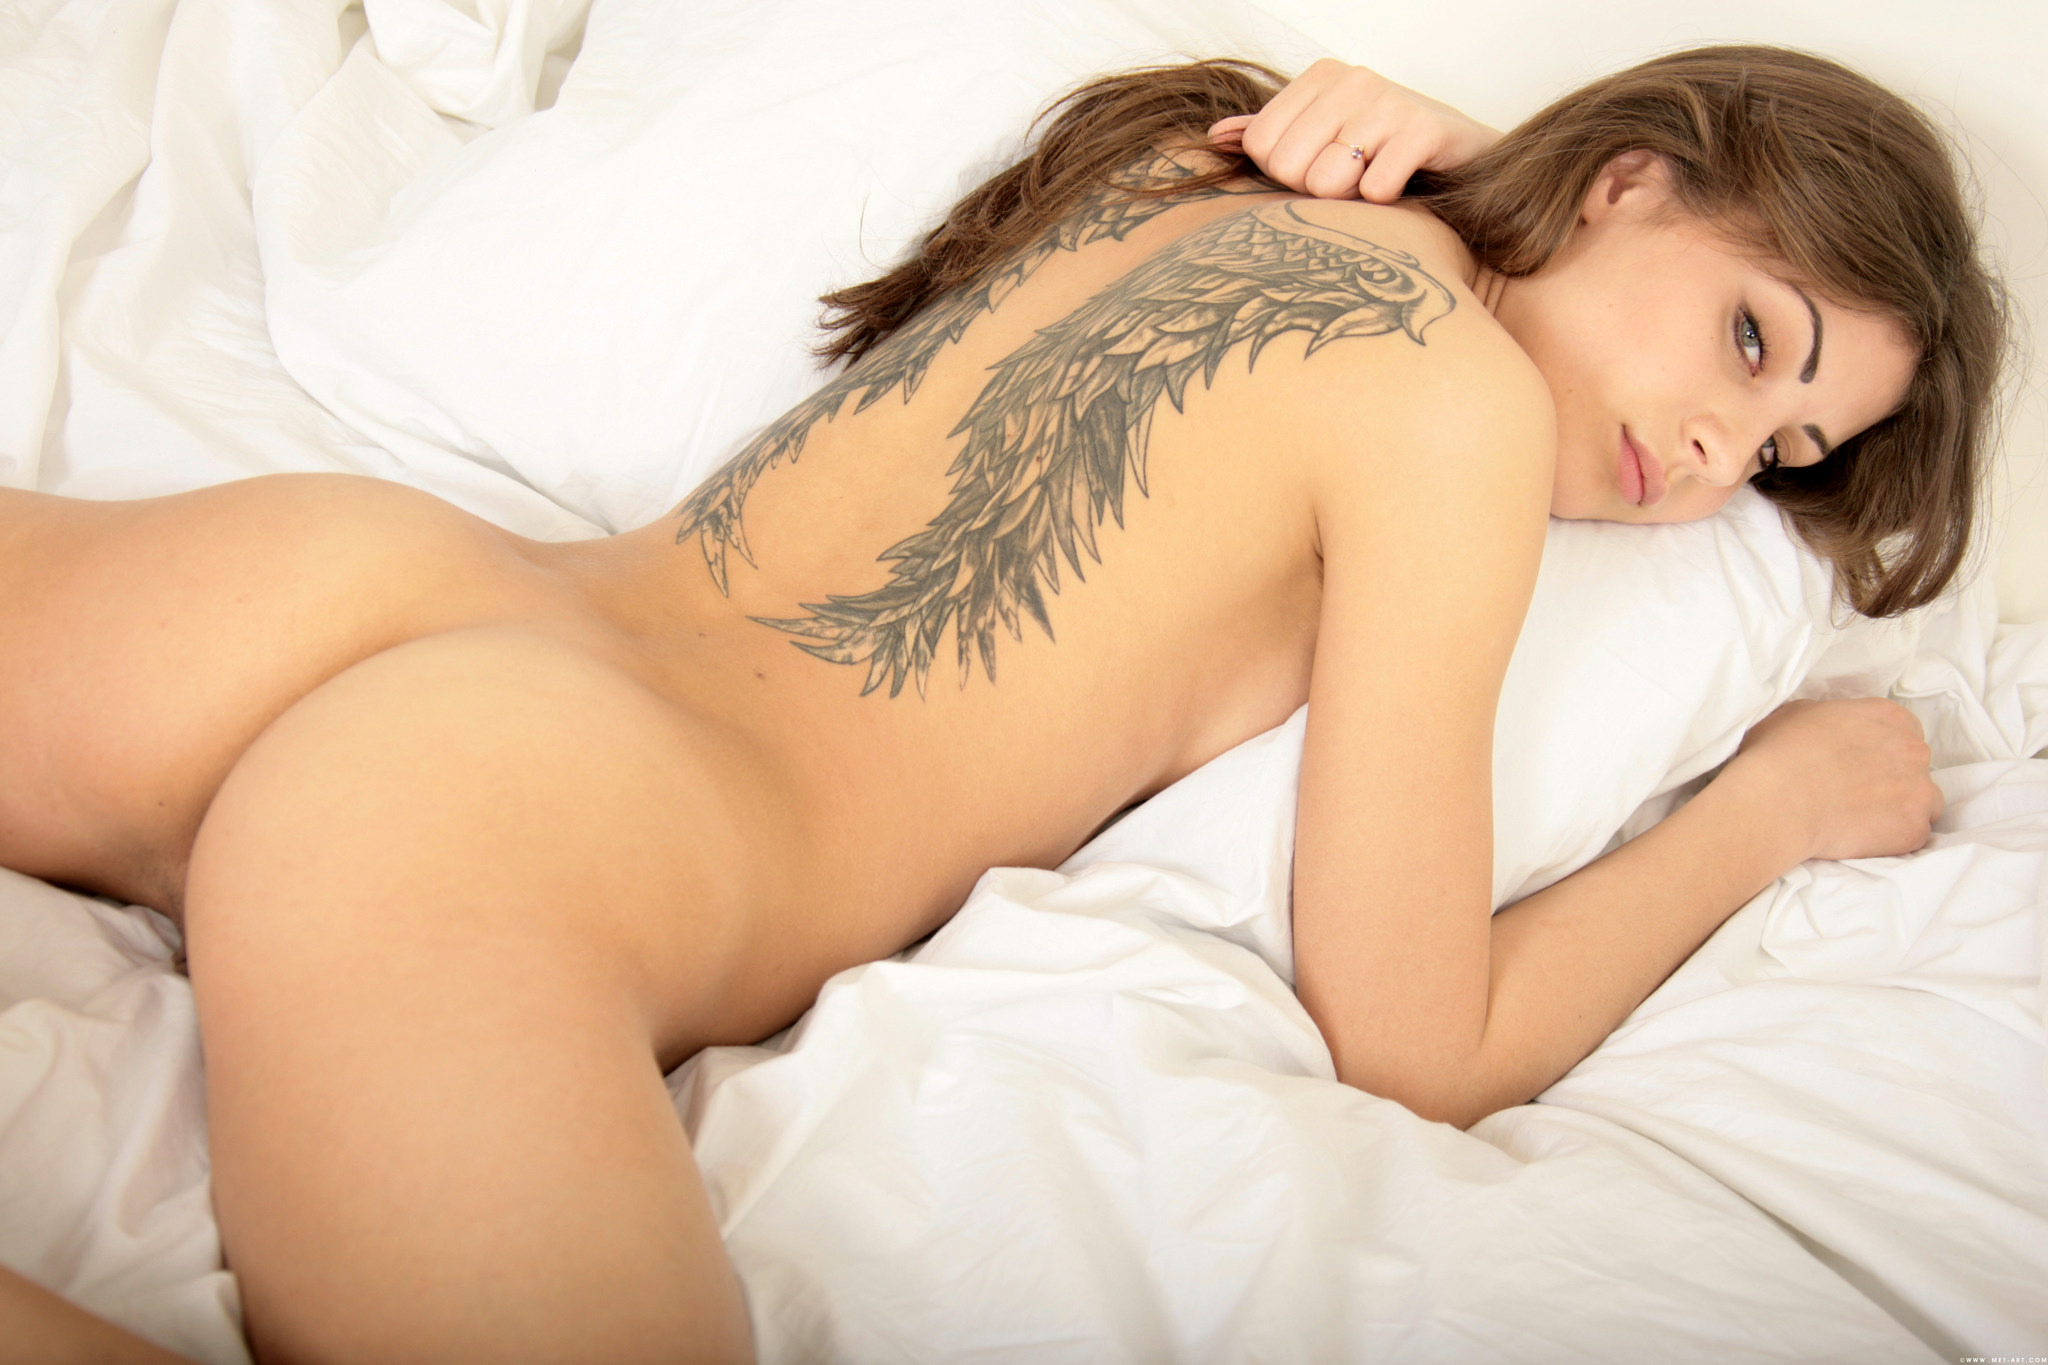 Nude angel tattoo porn images